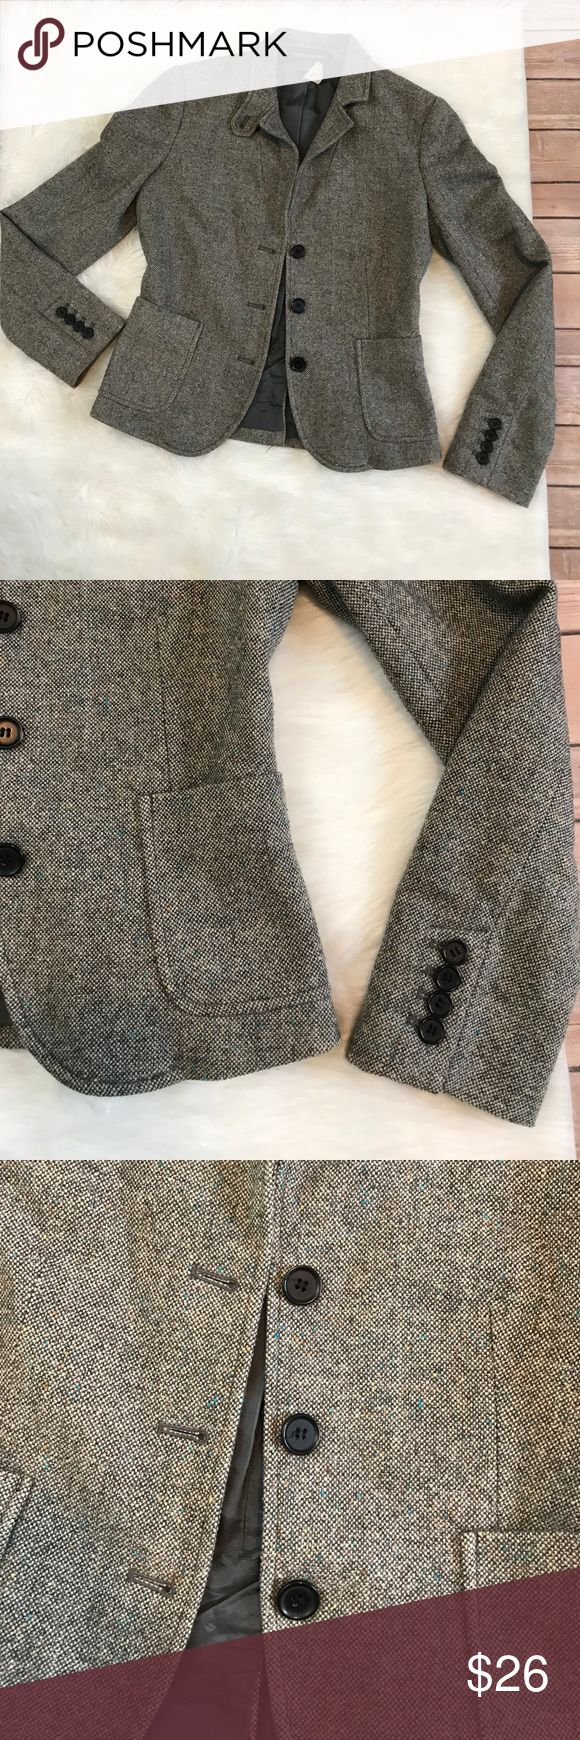 "Vintage J.Crew wool blend grey blazer Wool blend grey tweed blazer. Has metallic accents. Pockets! No flaws to note! Labeled size 0 . Bust 16.5"", length 21.5"", sleeve 22.5"" J. Crew Jackets & Coats Blazers"